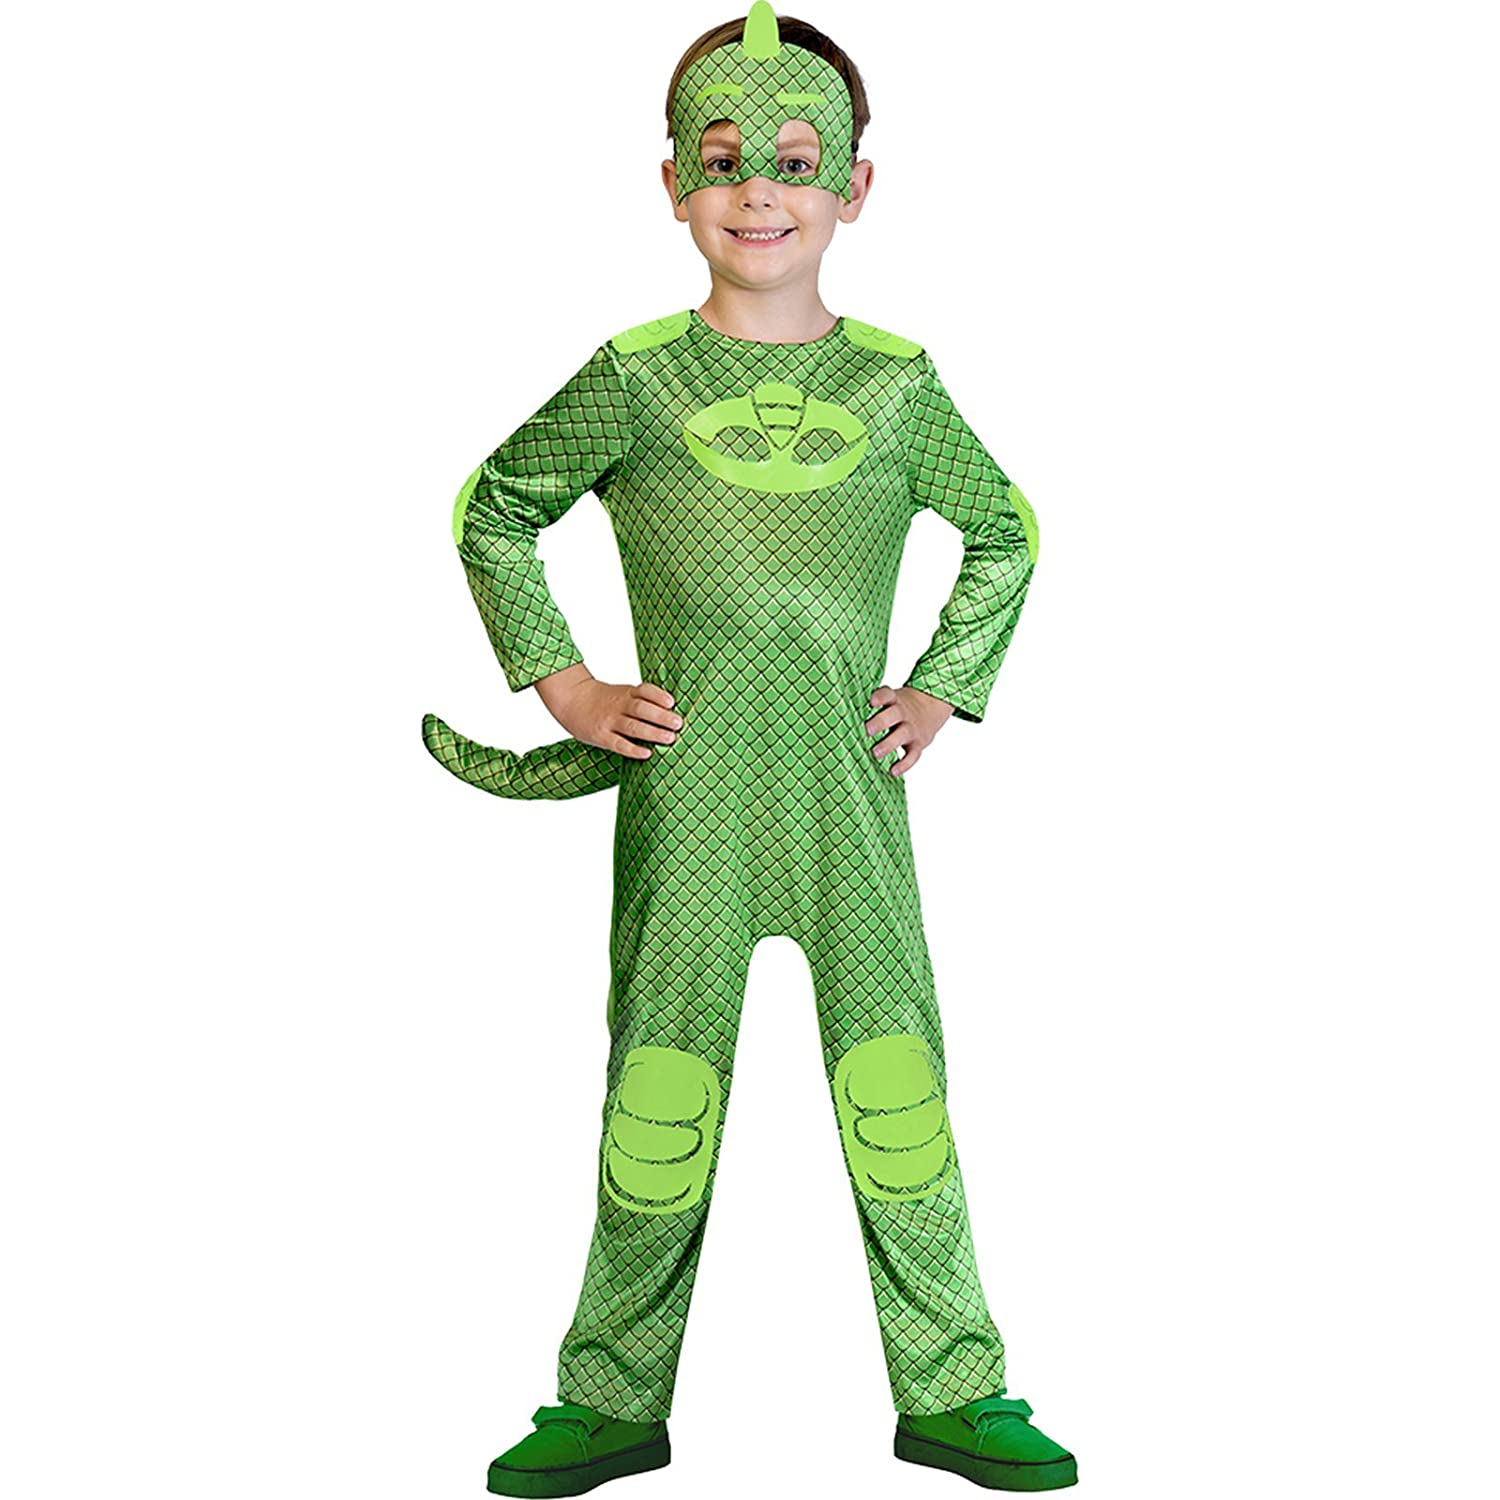 Childrens Size PJ Masks Gekko Costume Toddler (2-3 years): Amazon.es: Juguetes y juegos